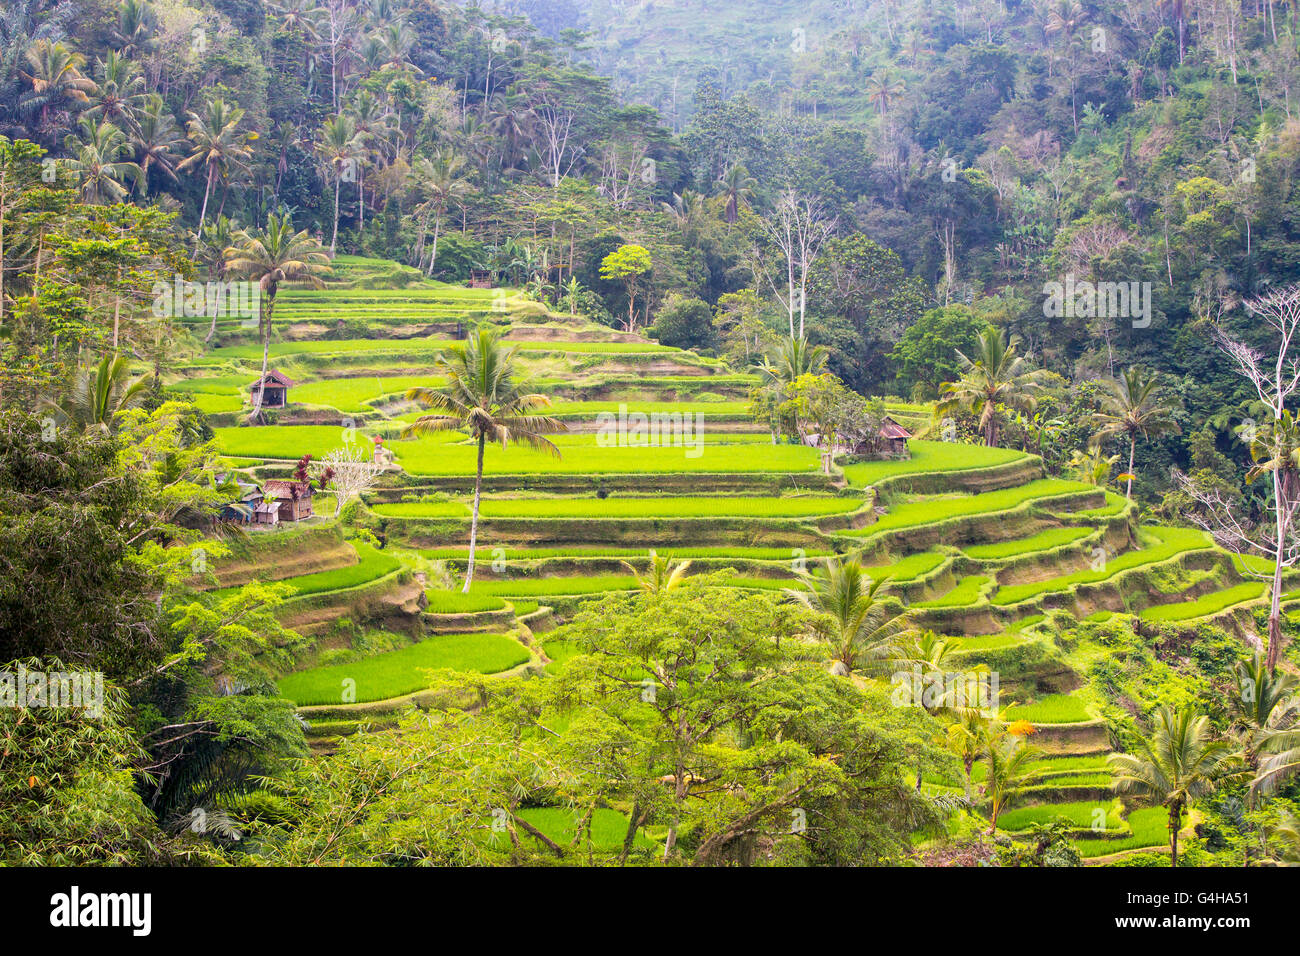 Crops of rice fields on a hot sunny afternoon near Ubud, Bali, Indonesia - Stock Image